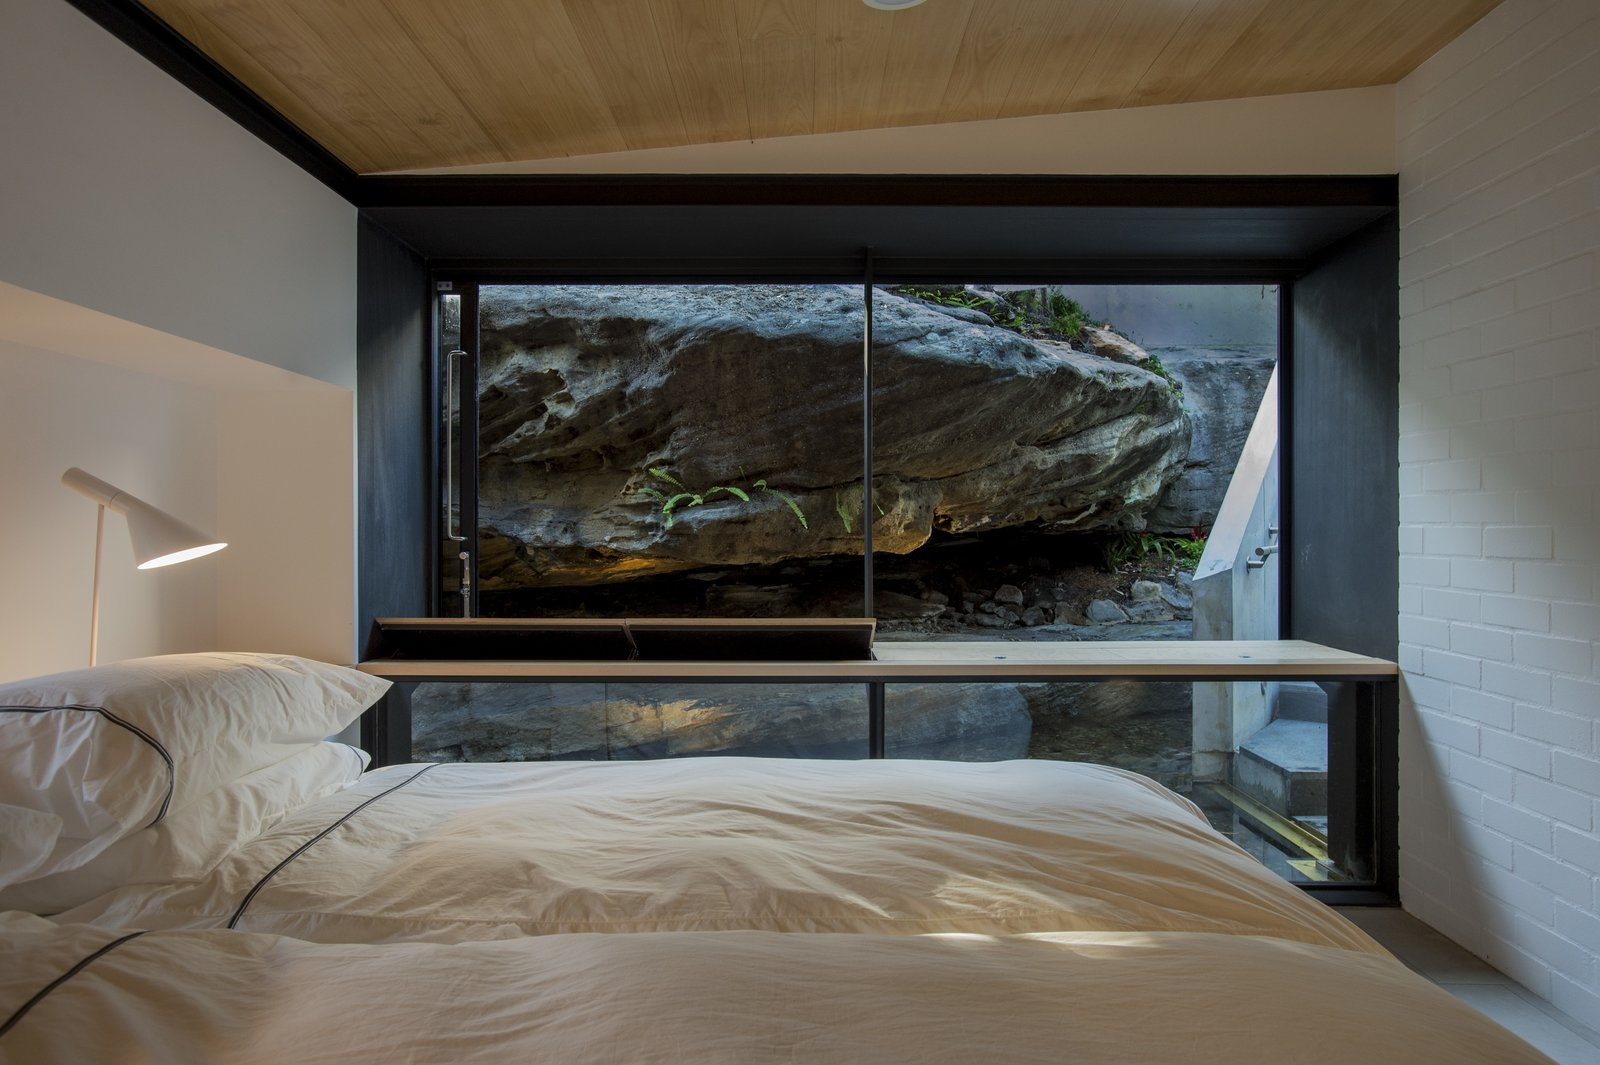 Bedroom, Lamps, Bed, Concrete Floor, Shelves, and Table Lighting The rock ledge provides natural privacy from the street and ensconces occupants in the site's beauty.  Photo 7 of 8 in An Arresting Australian Abode by Glenn Murcutt Needs a Buyer